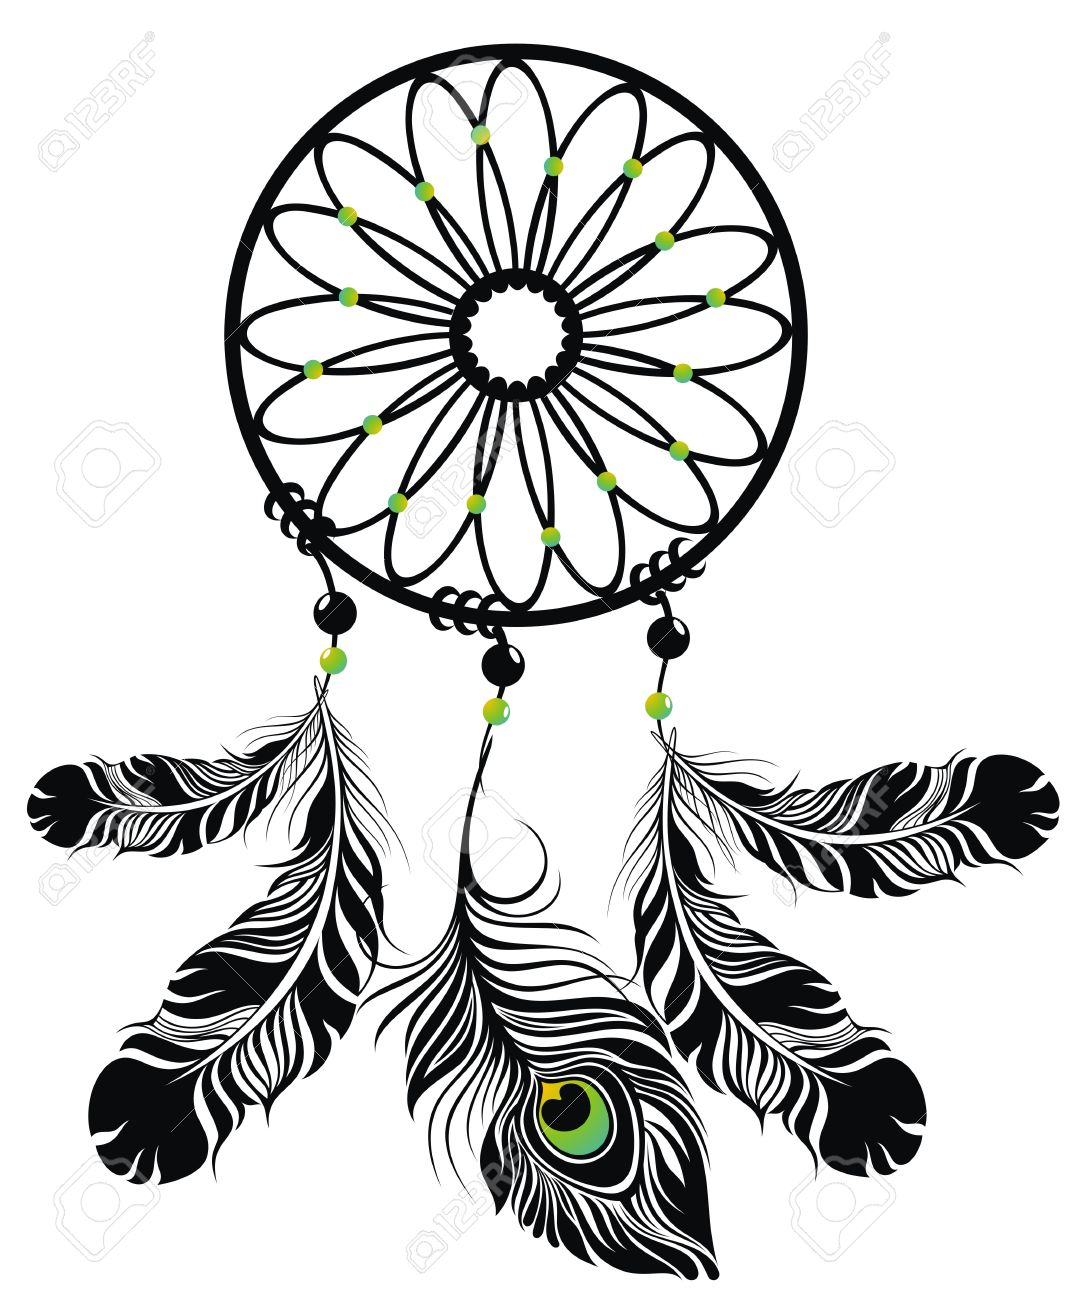 dream catcher royalty free cliparts vectors and stock illustration rh 123rf com dreamcatcher victor idaho eclipse dreamcatcher victor idaho eclipse